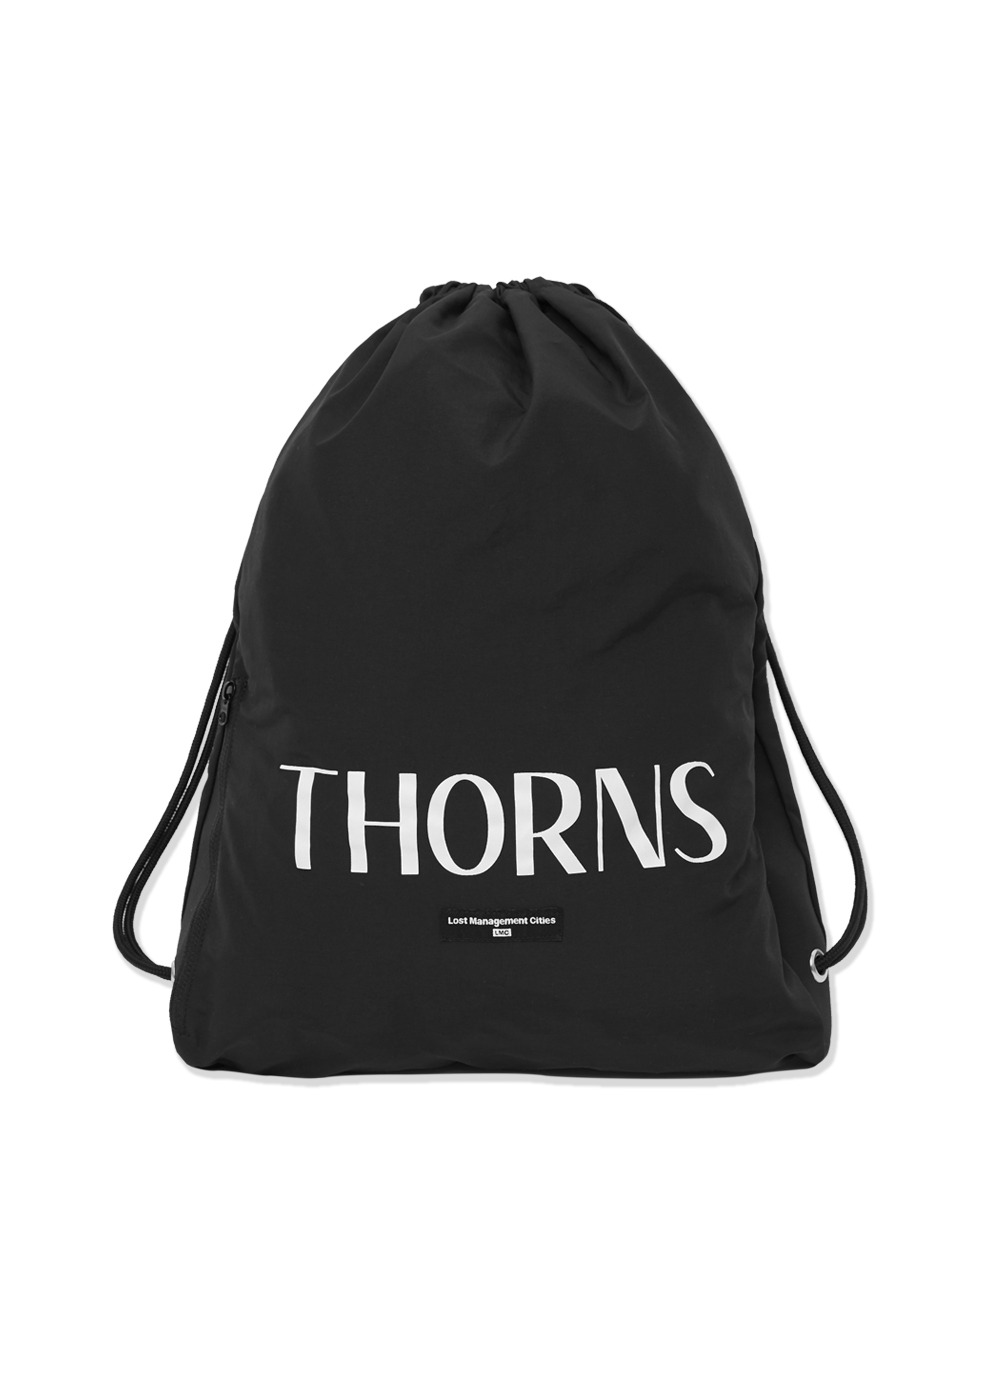 LMC THORNS GYM SACK black